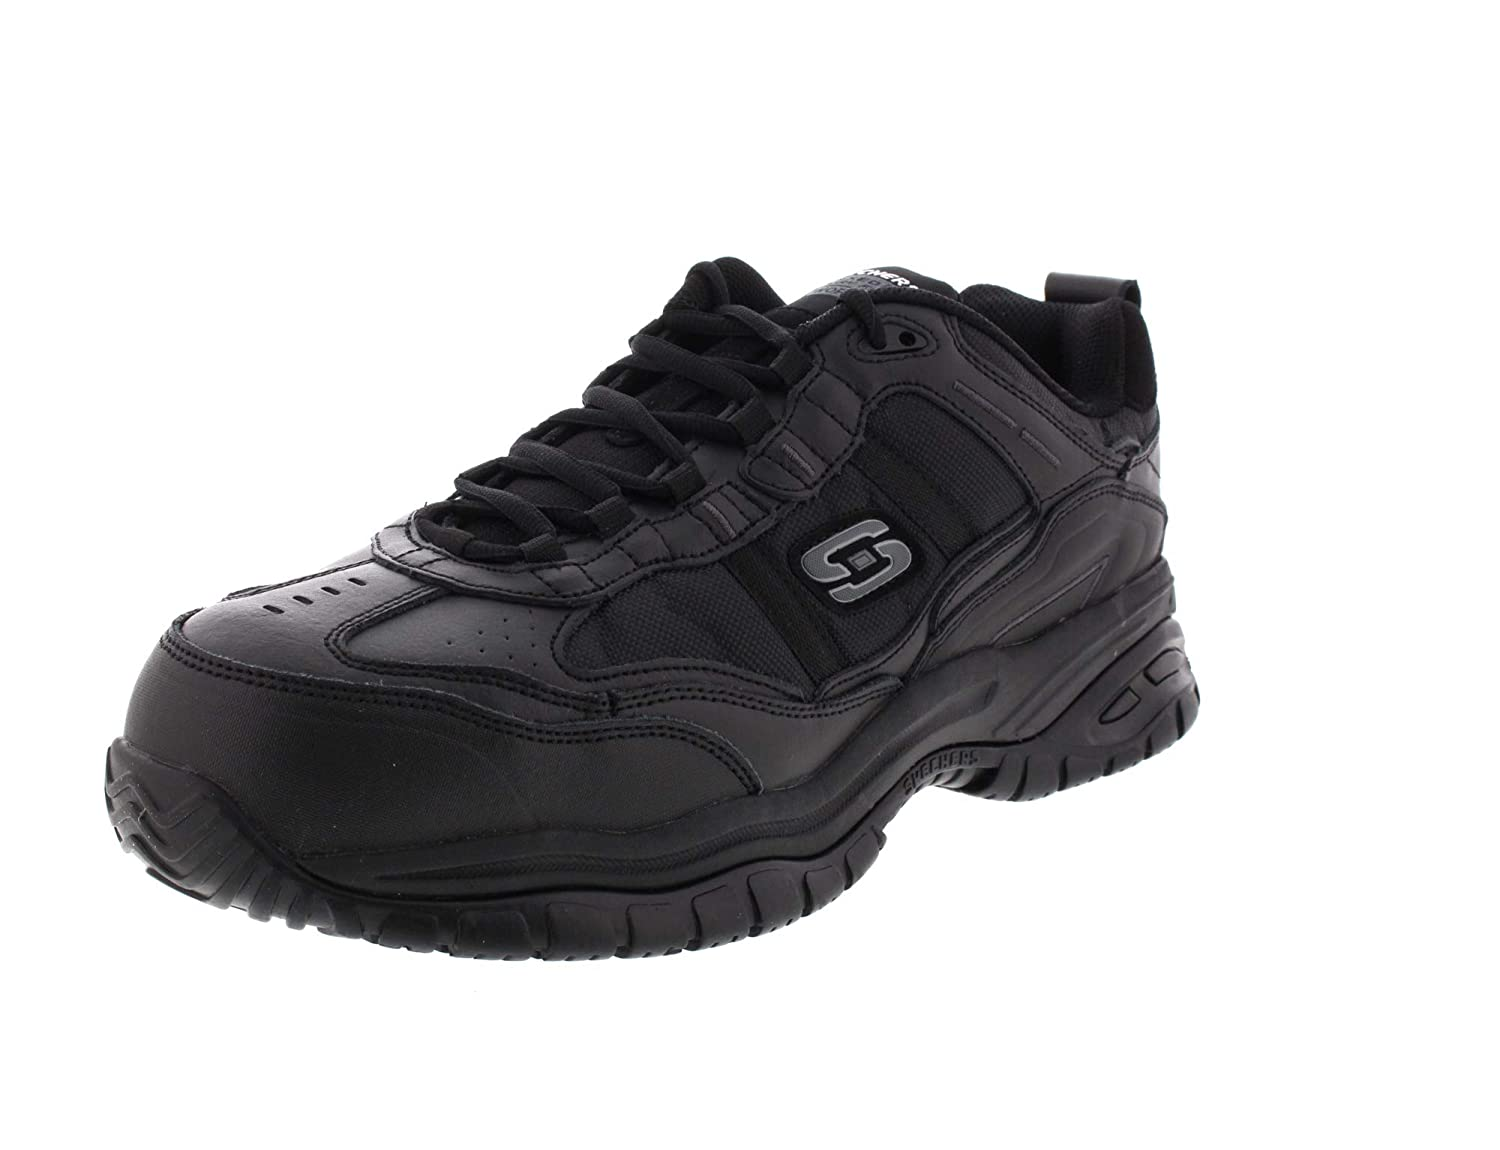 Zapato Industrial para Hombre Skechers Soft Stride Grinnel